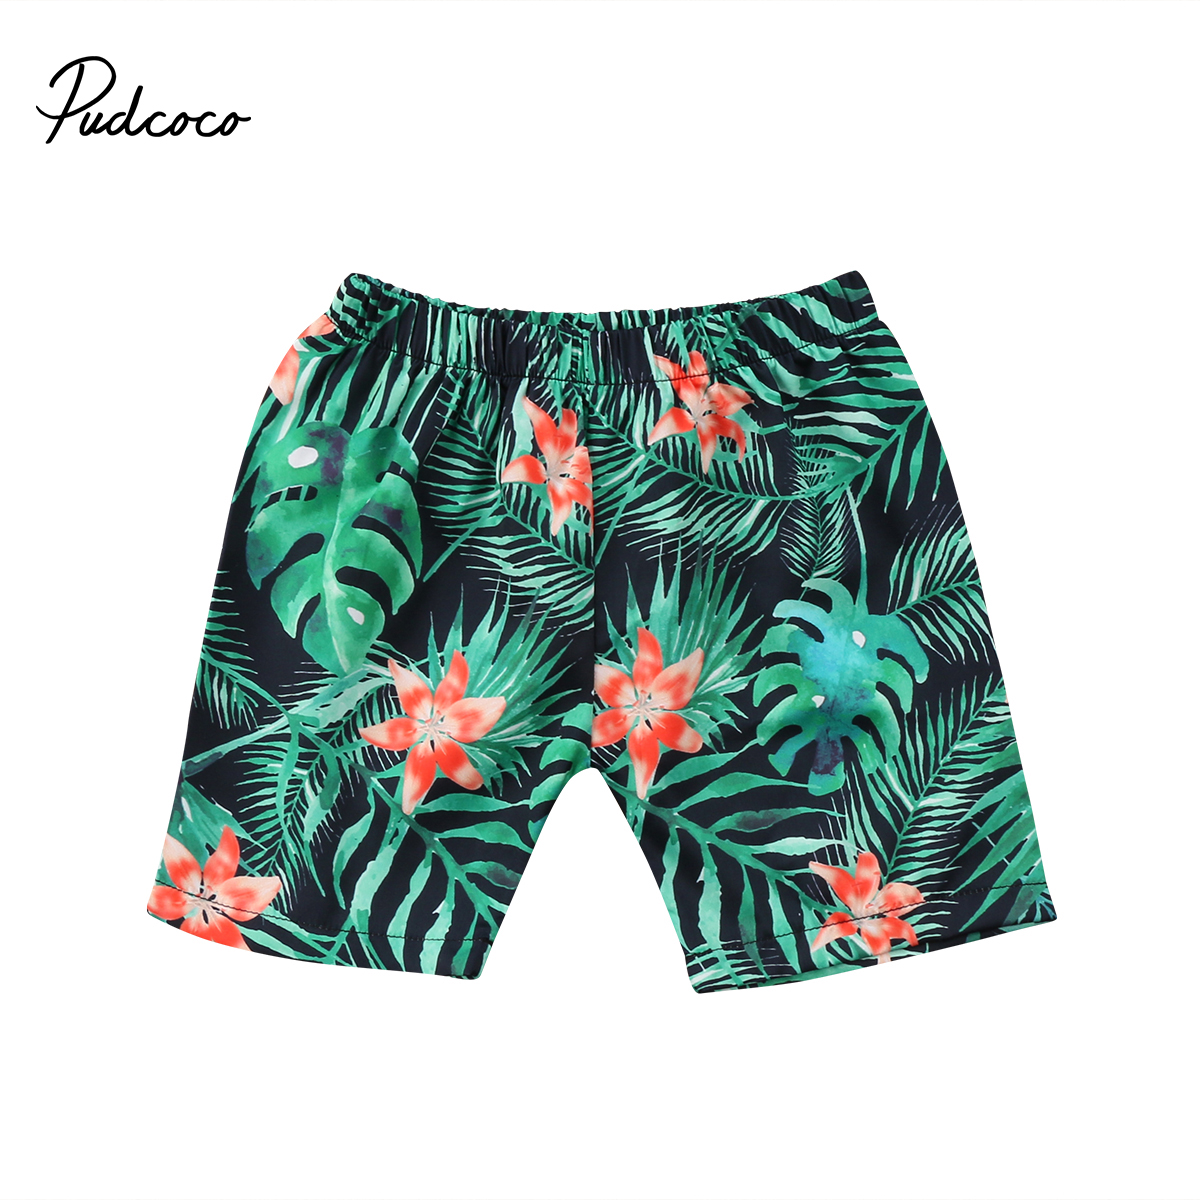 Swimming-Pants Shorts Beach-Pants Baby-Boys Summer Flower Print Floral Sport-Bottoms